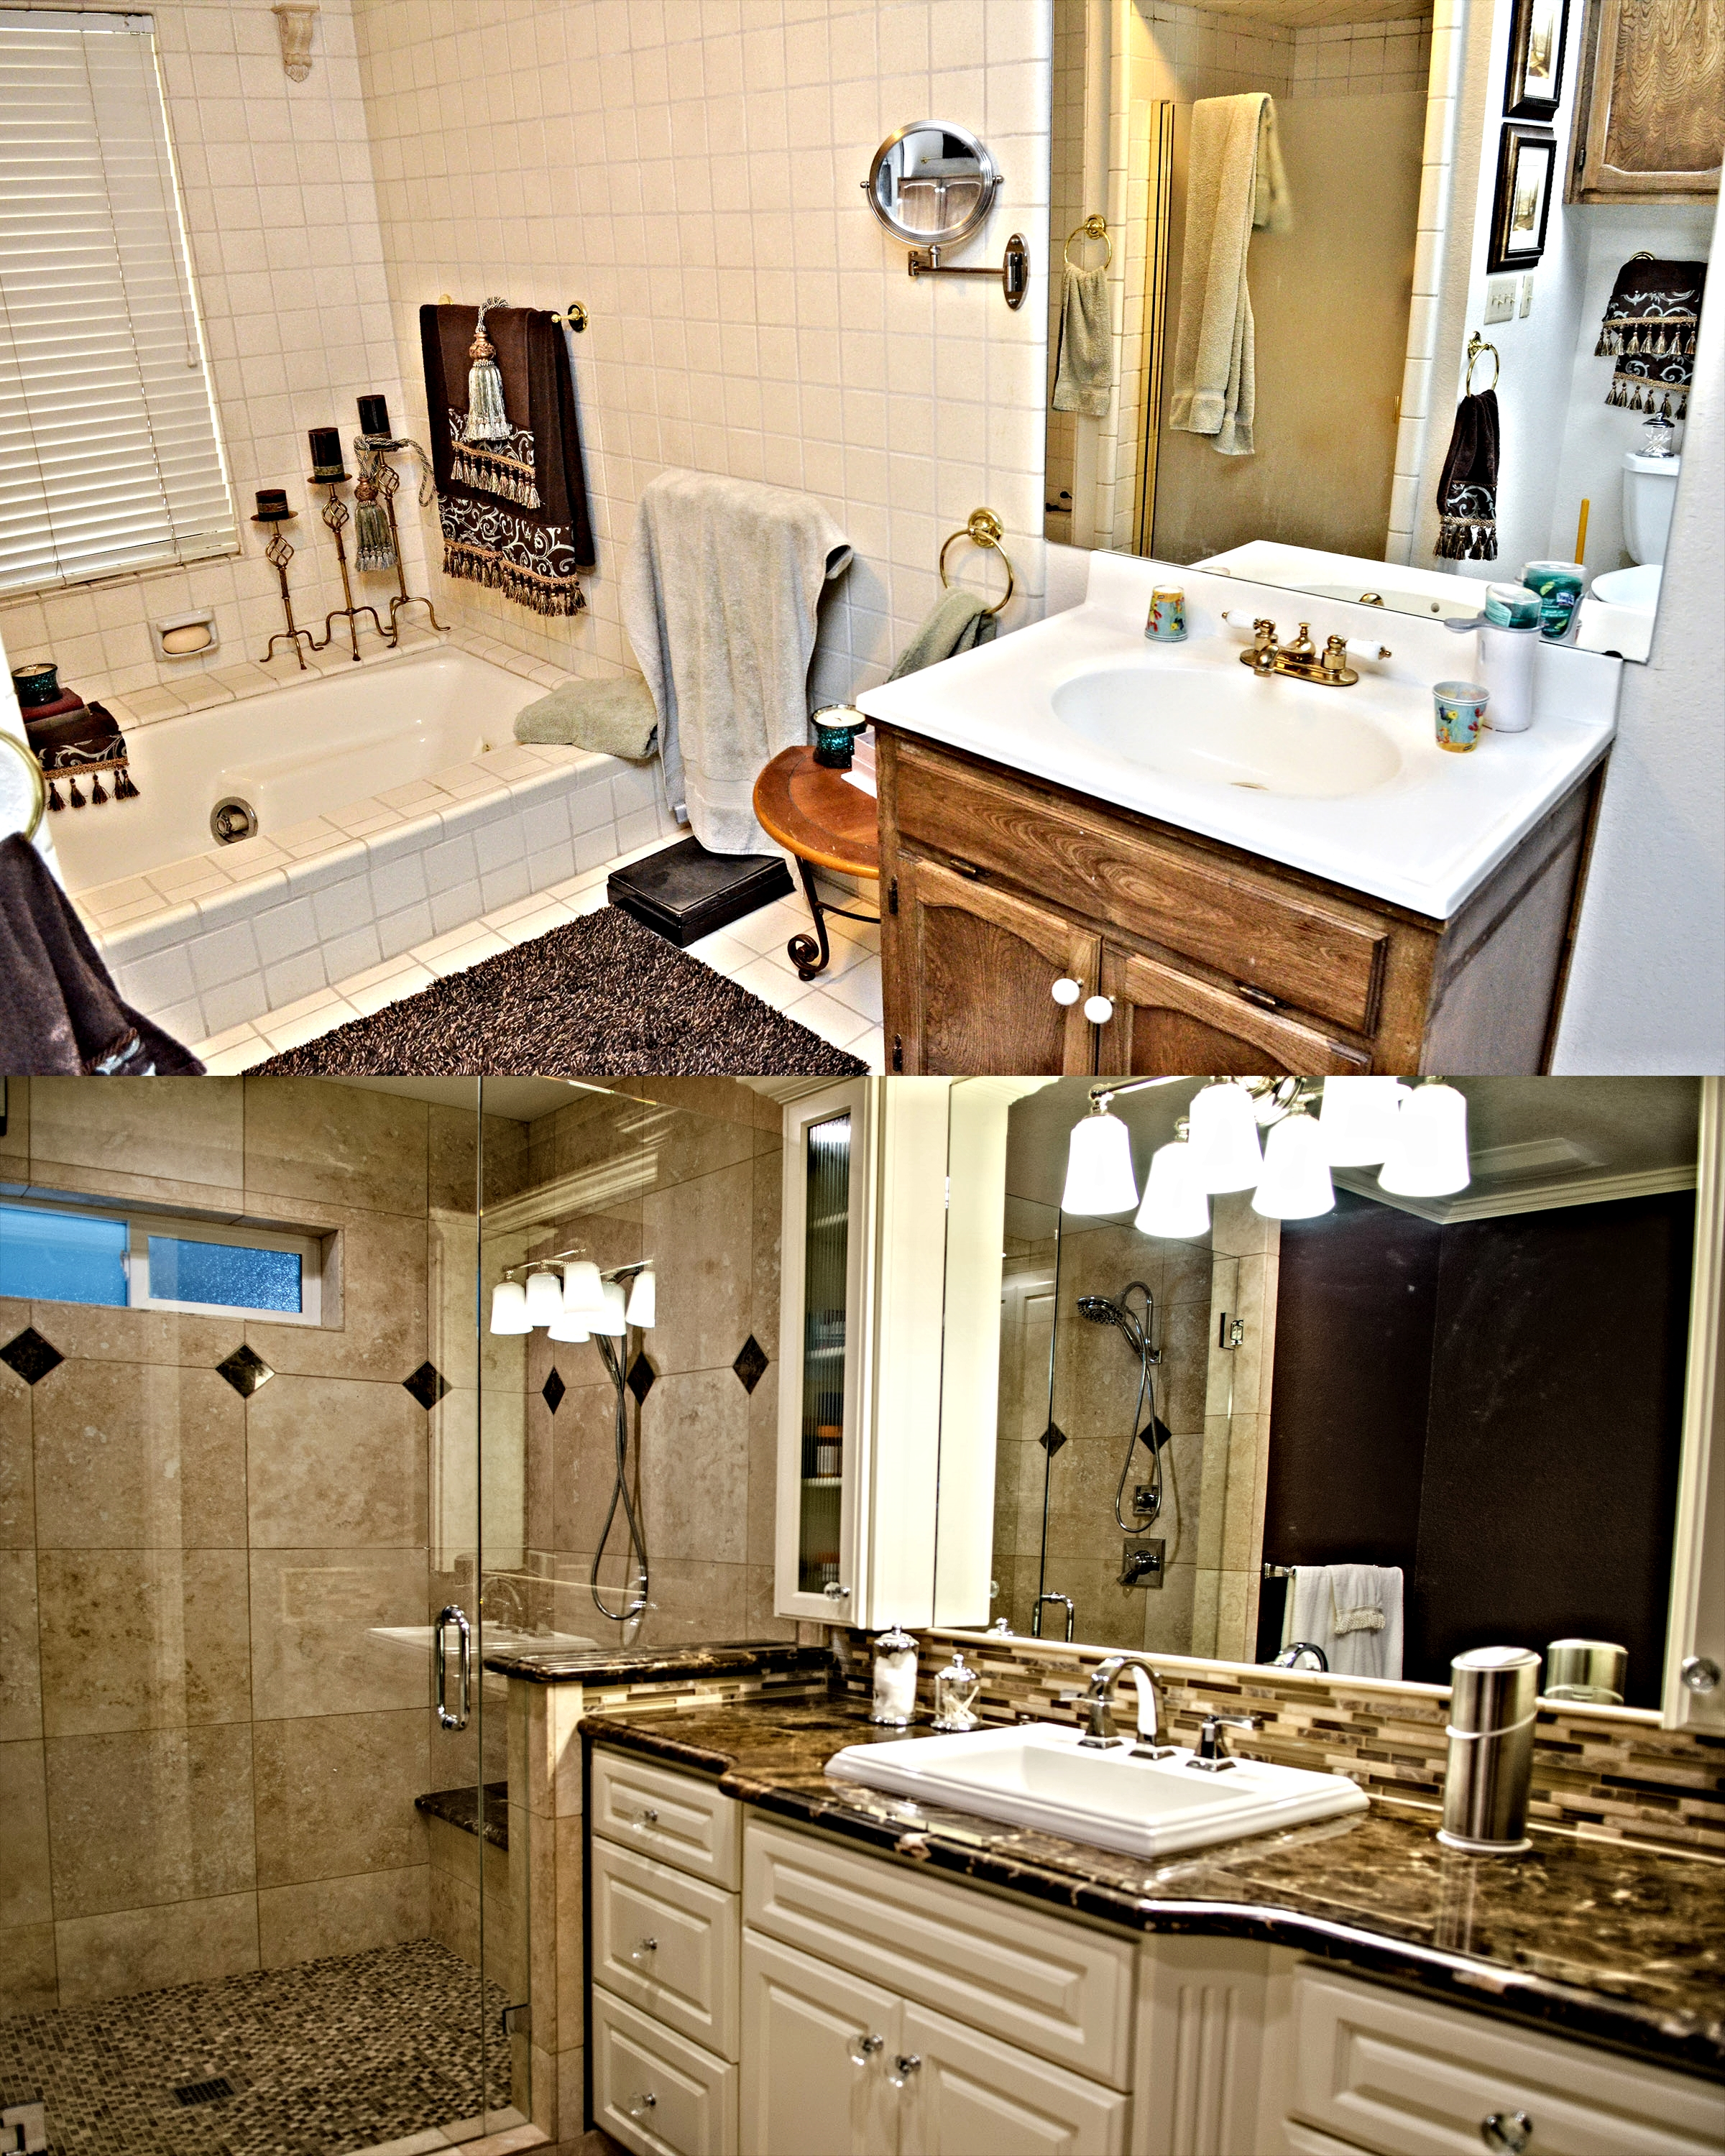 Before and After Bathroom1.jpg